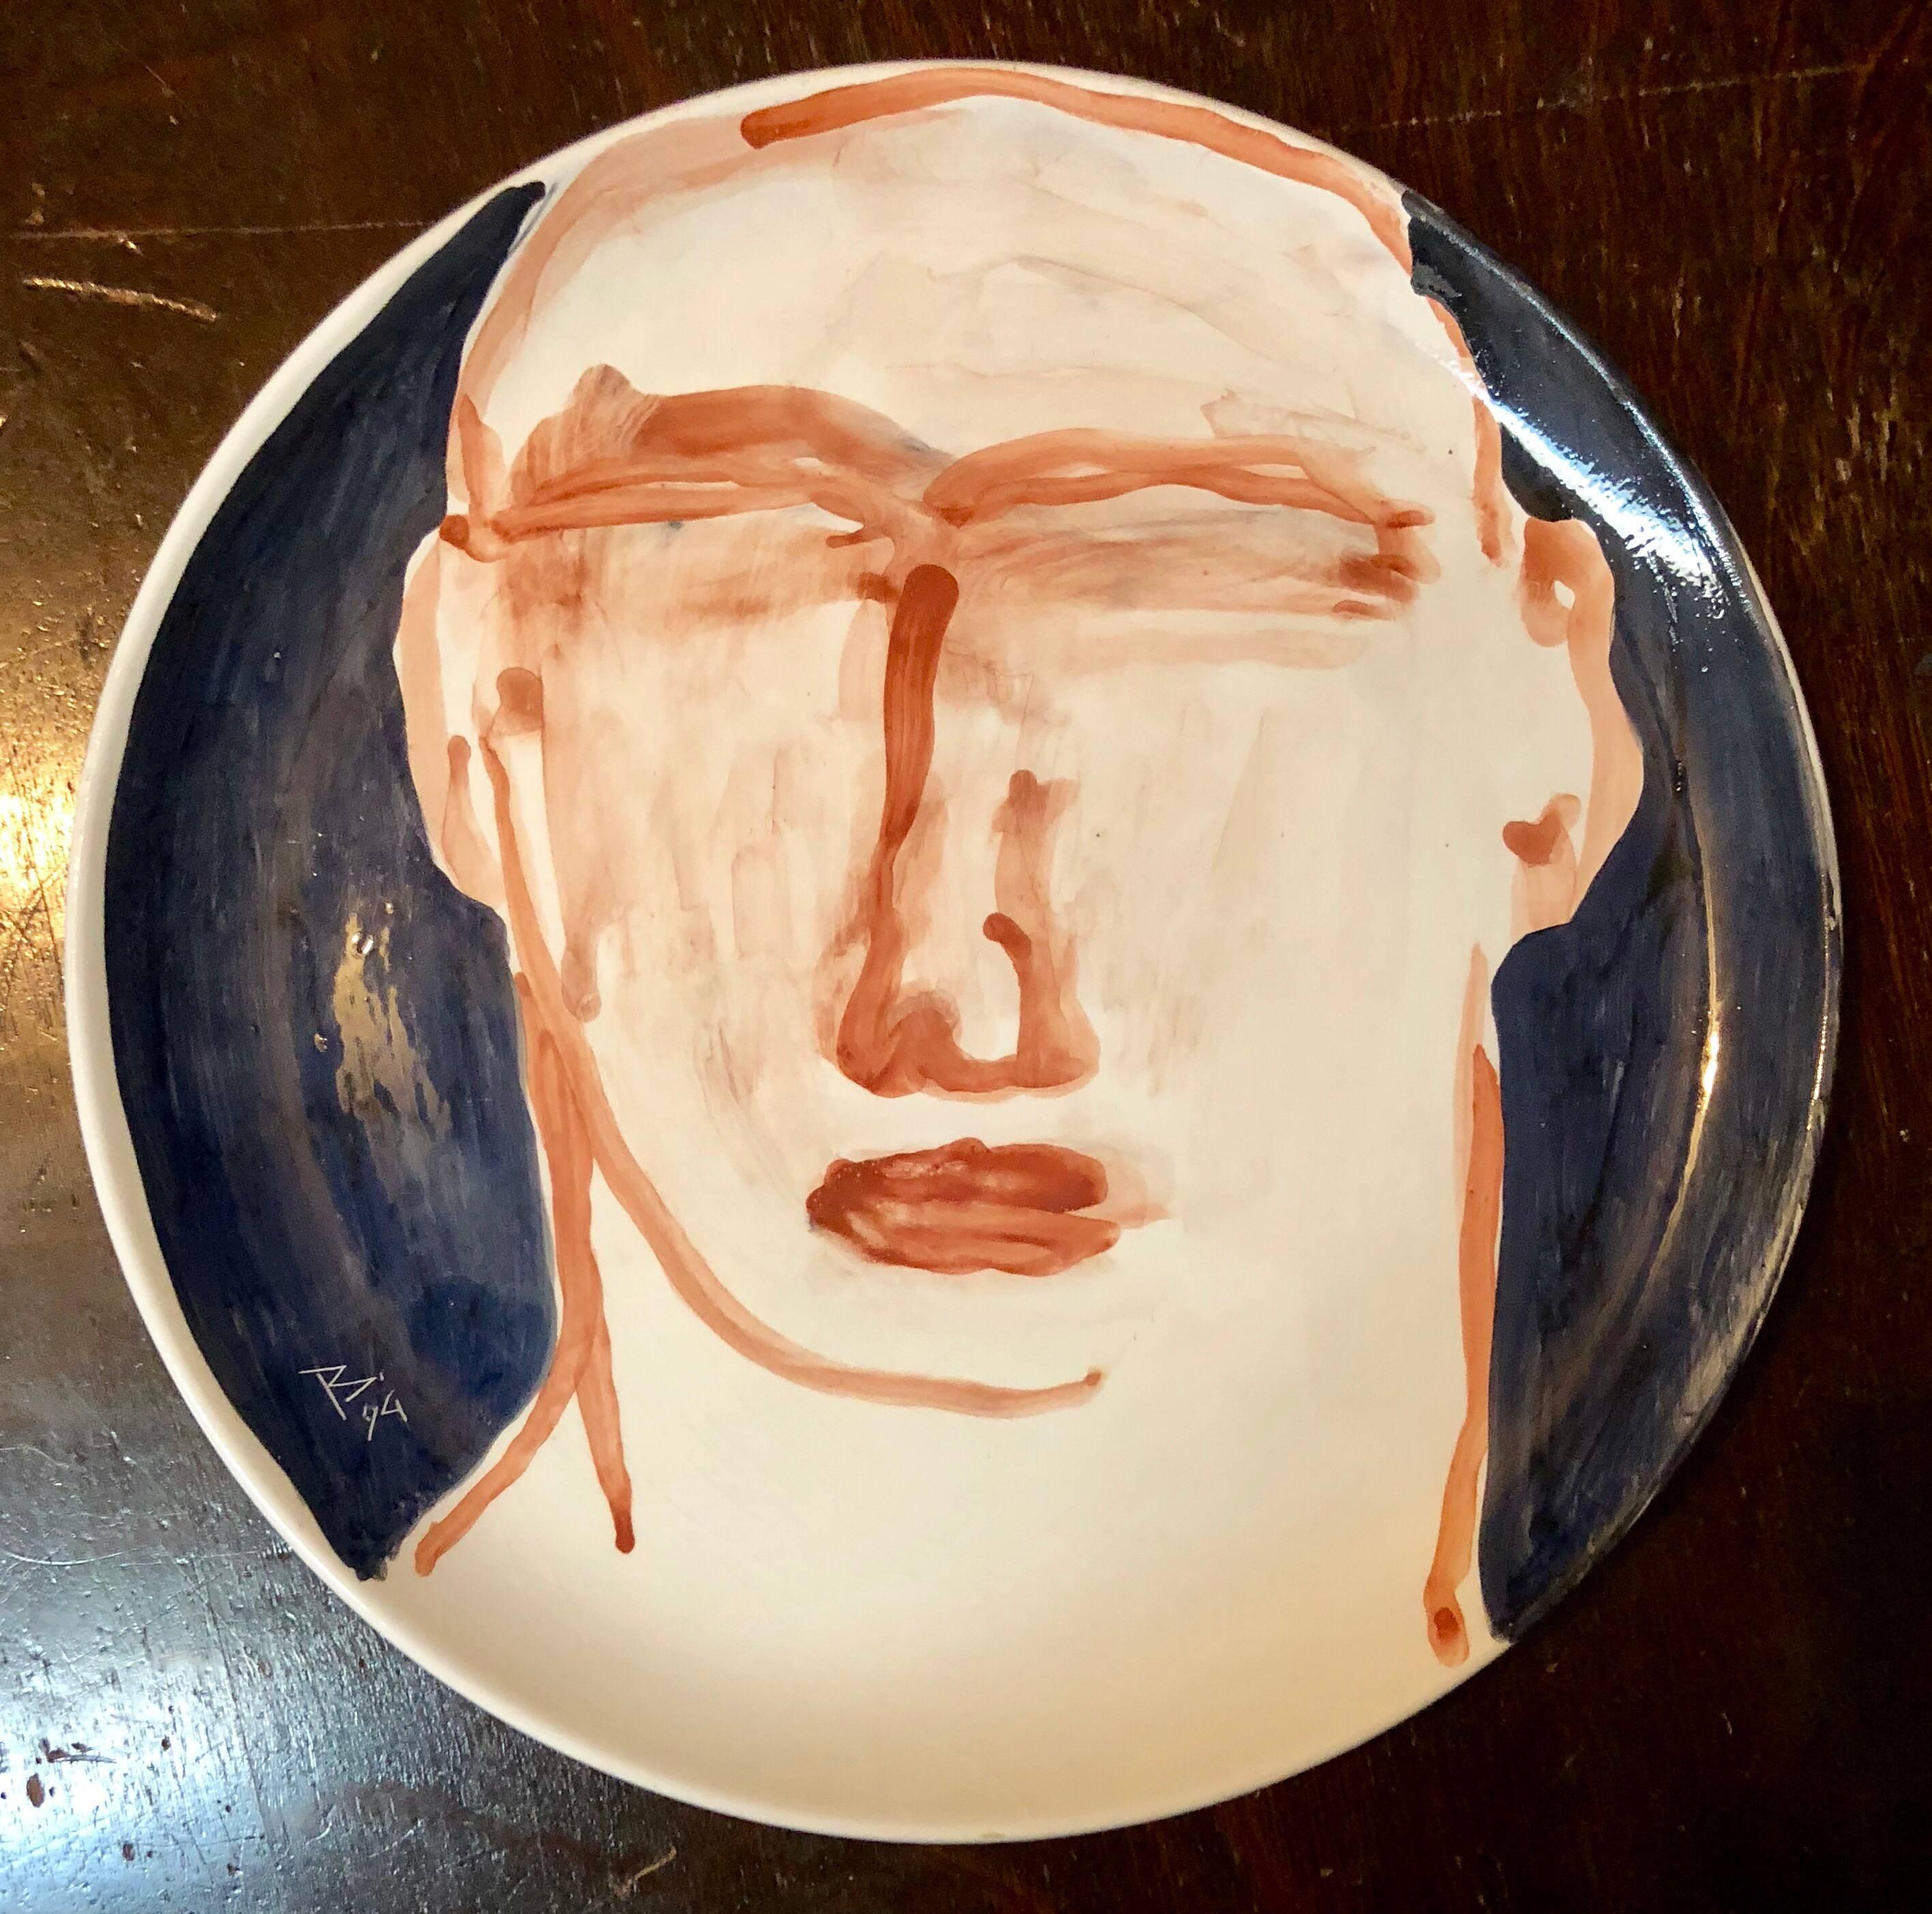 Contemporary Italian Painted Ceramic Artist Plate Brutalist Face Painting